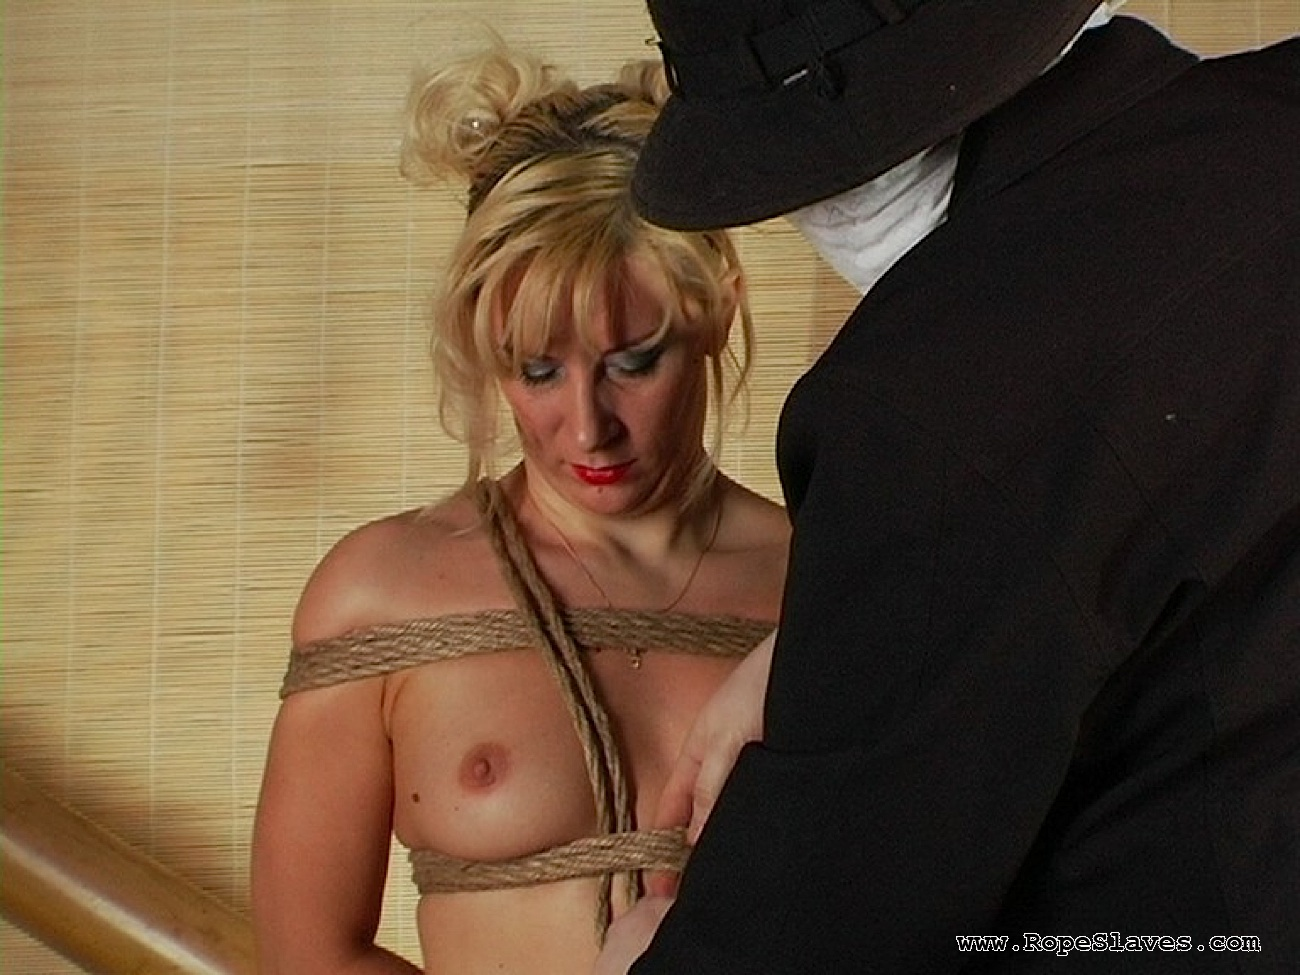 04 Submissive Sex Slave Inspection - Obedient Blond Bound